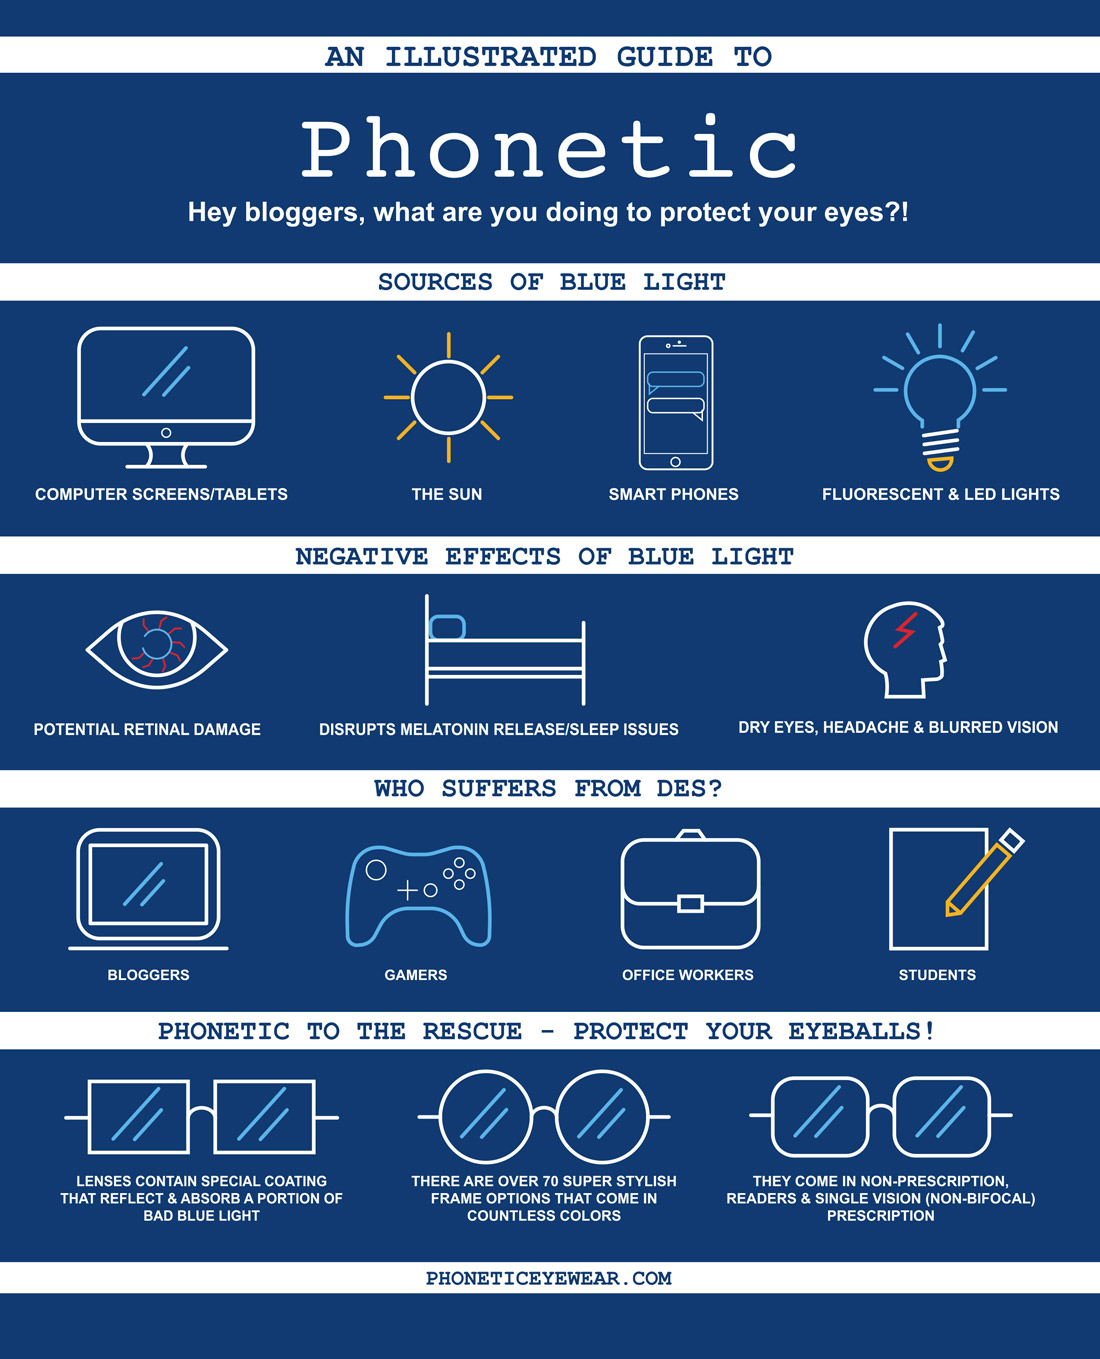 Phonetic-Eyewear-infographic